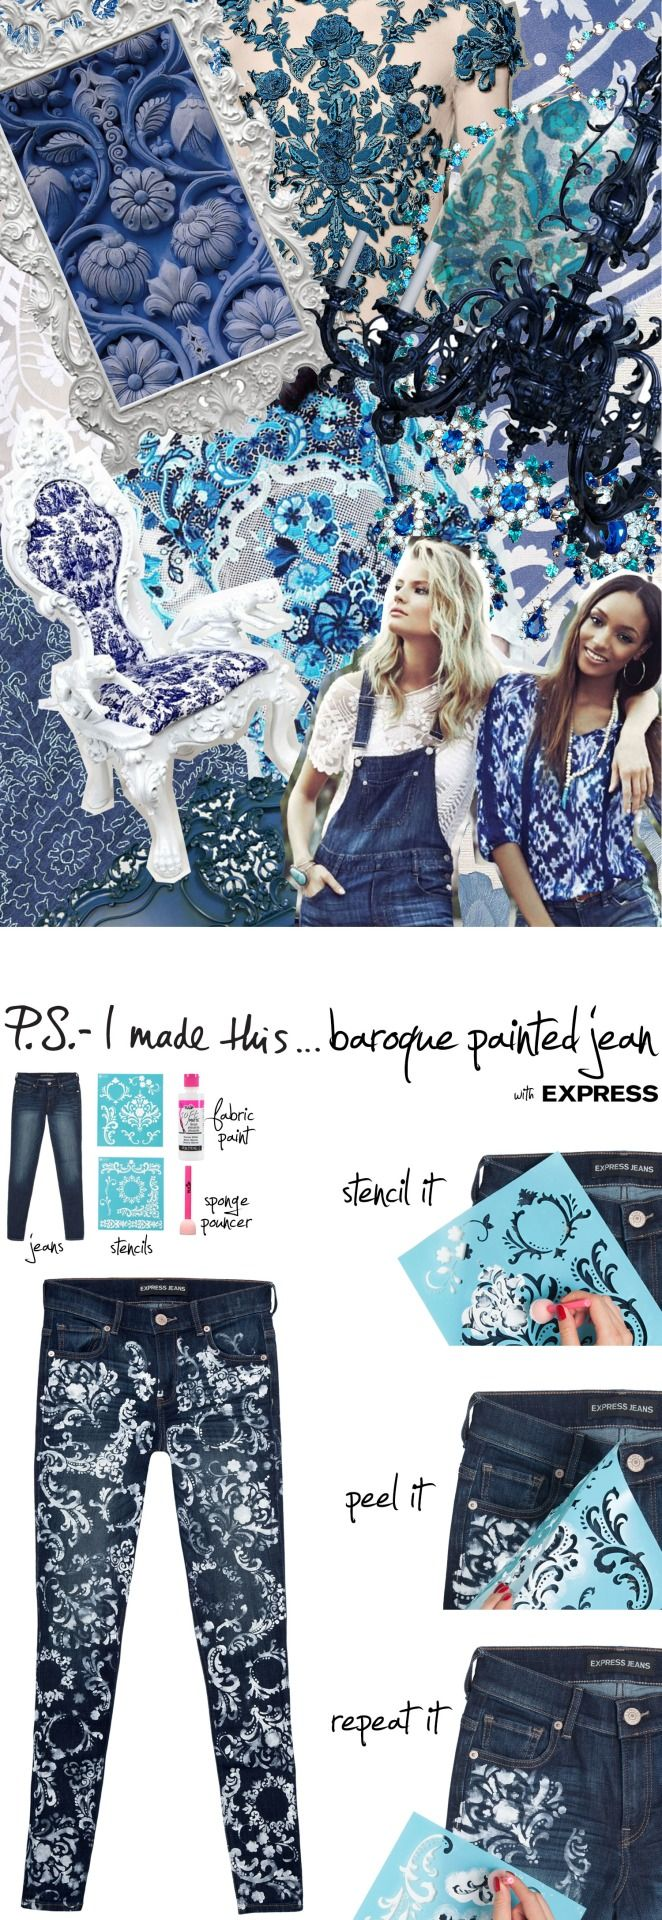 Fall into autumn by repurposing your summer denim with a baroque printed jean! Often the only thing that eases our transition into cooler months is the thought of stepping into more fashion-y, less...